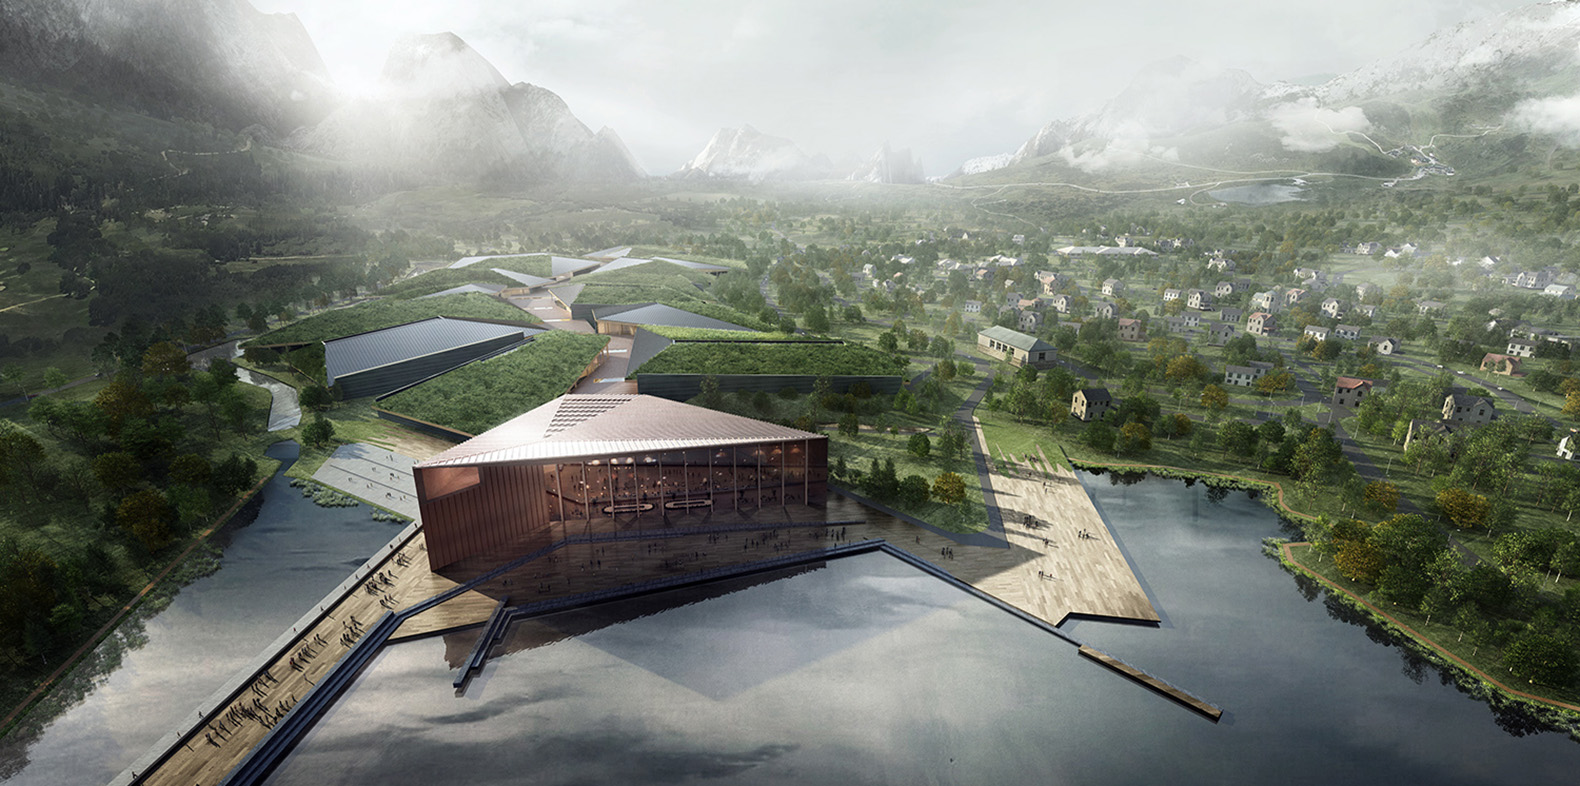 Massive new data center to be built in chilly Norway to offset energy use